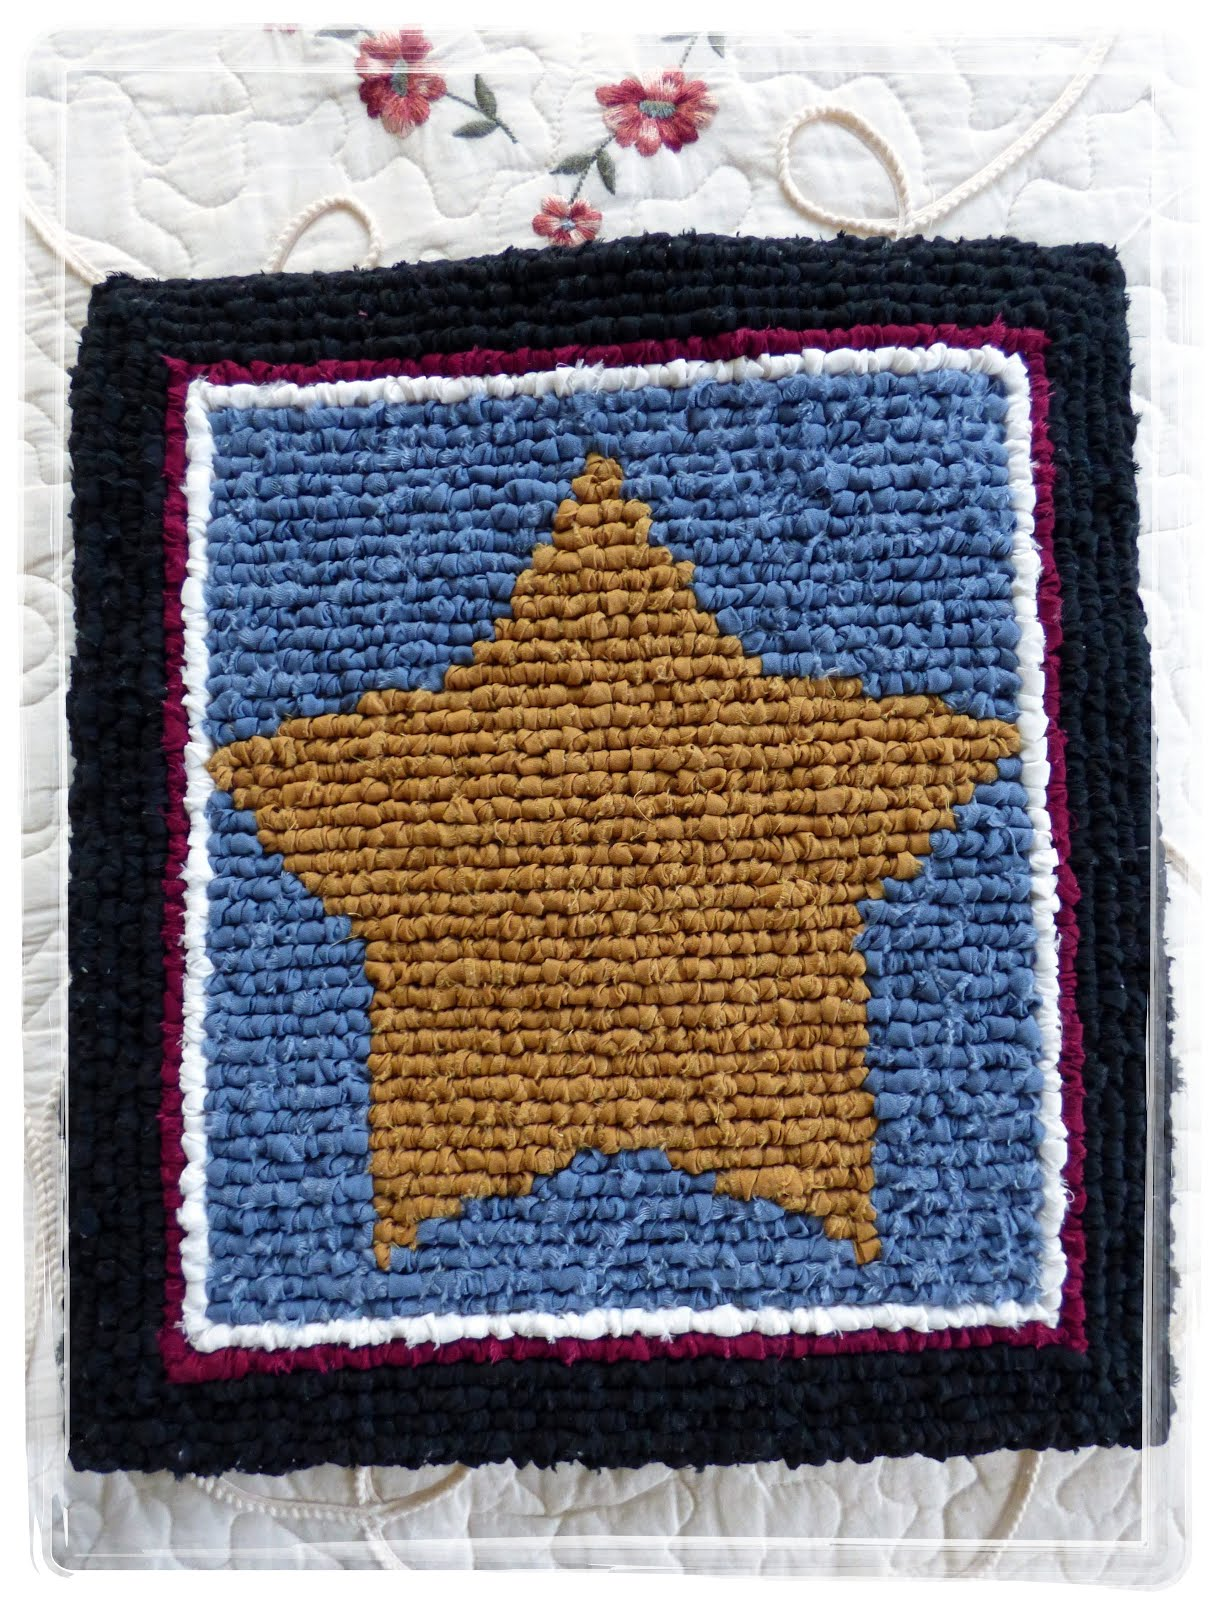 Star Locker Hooking Mat #2